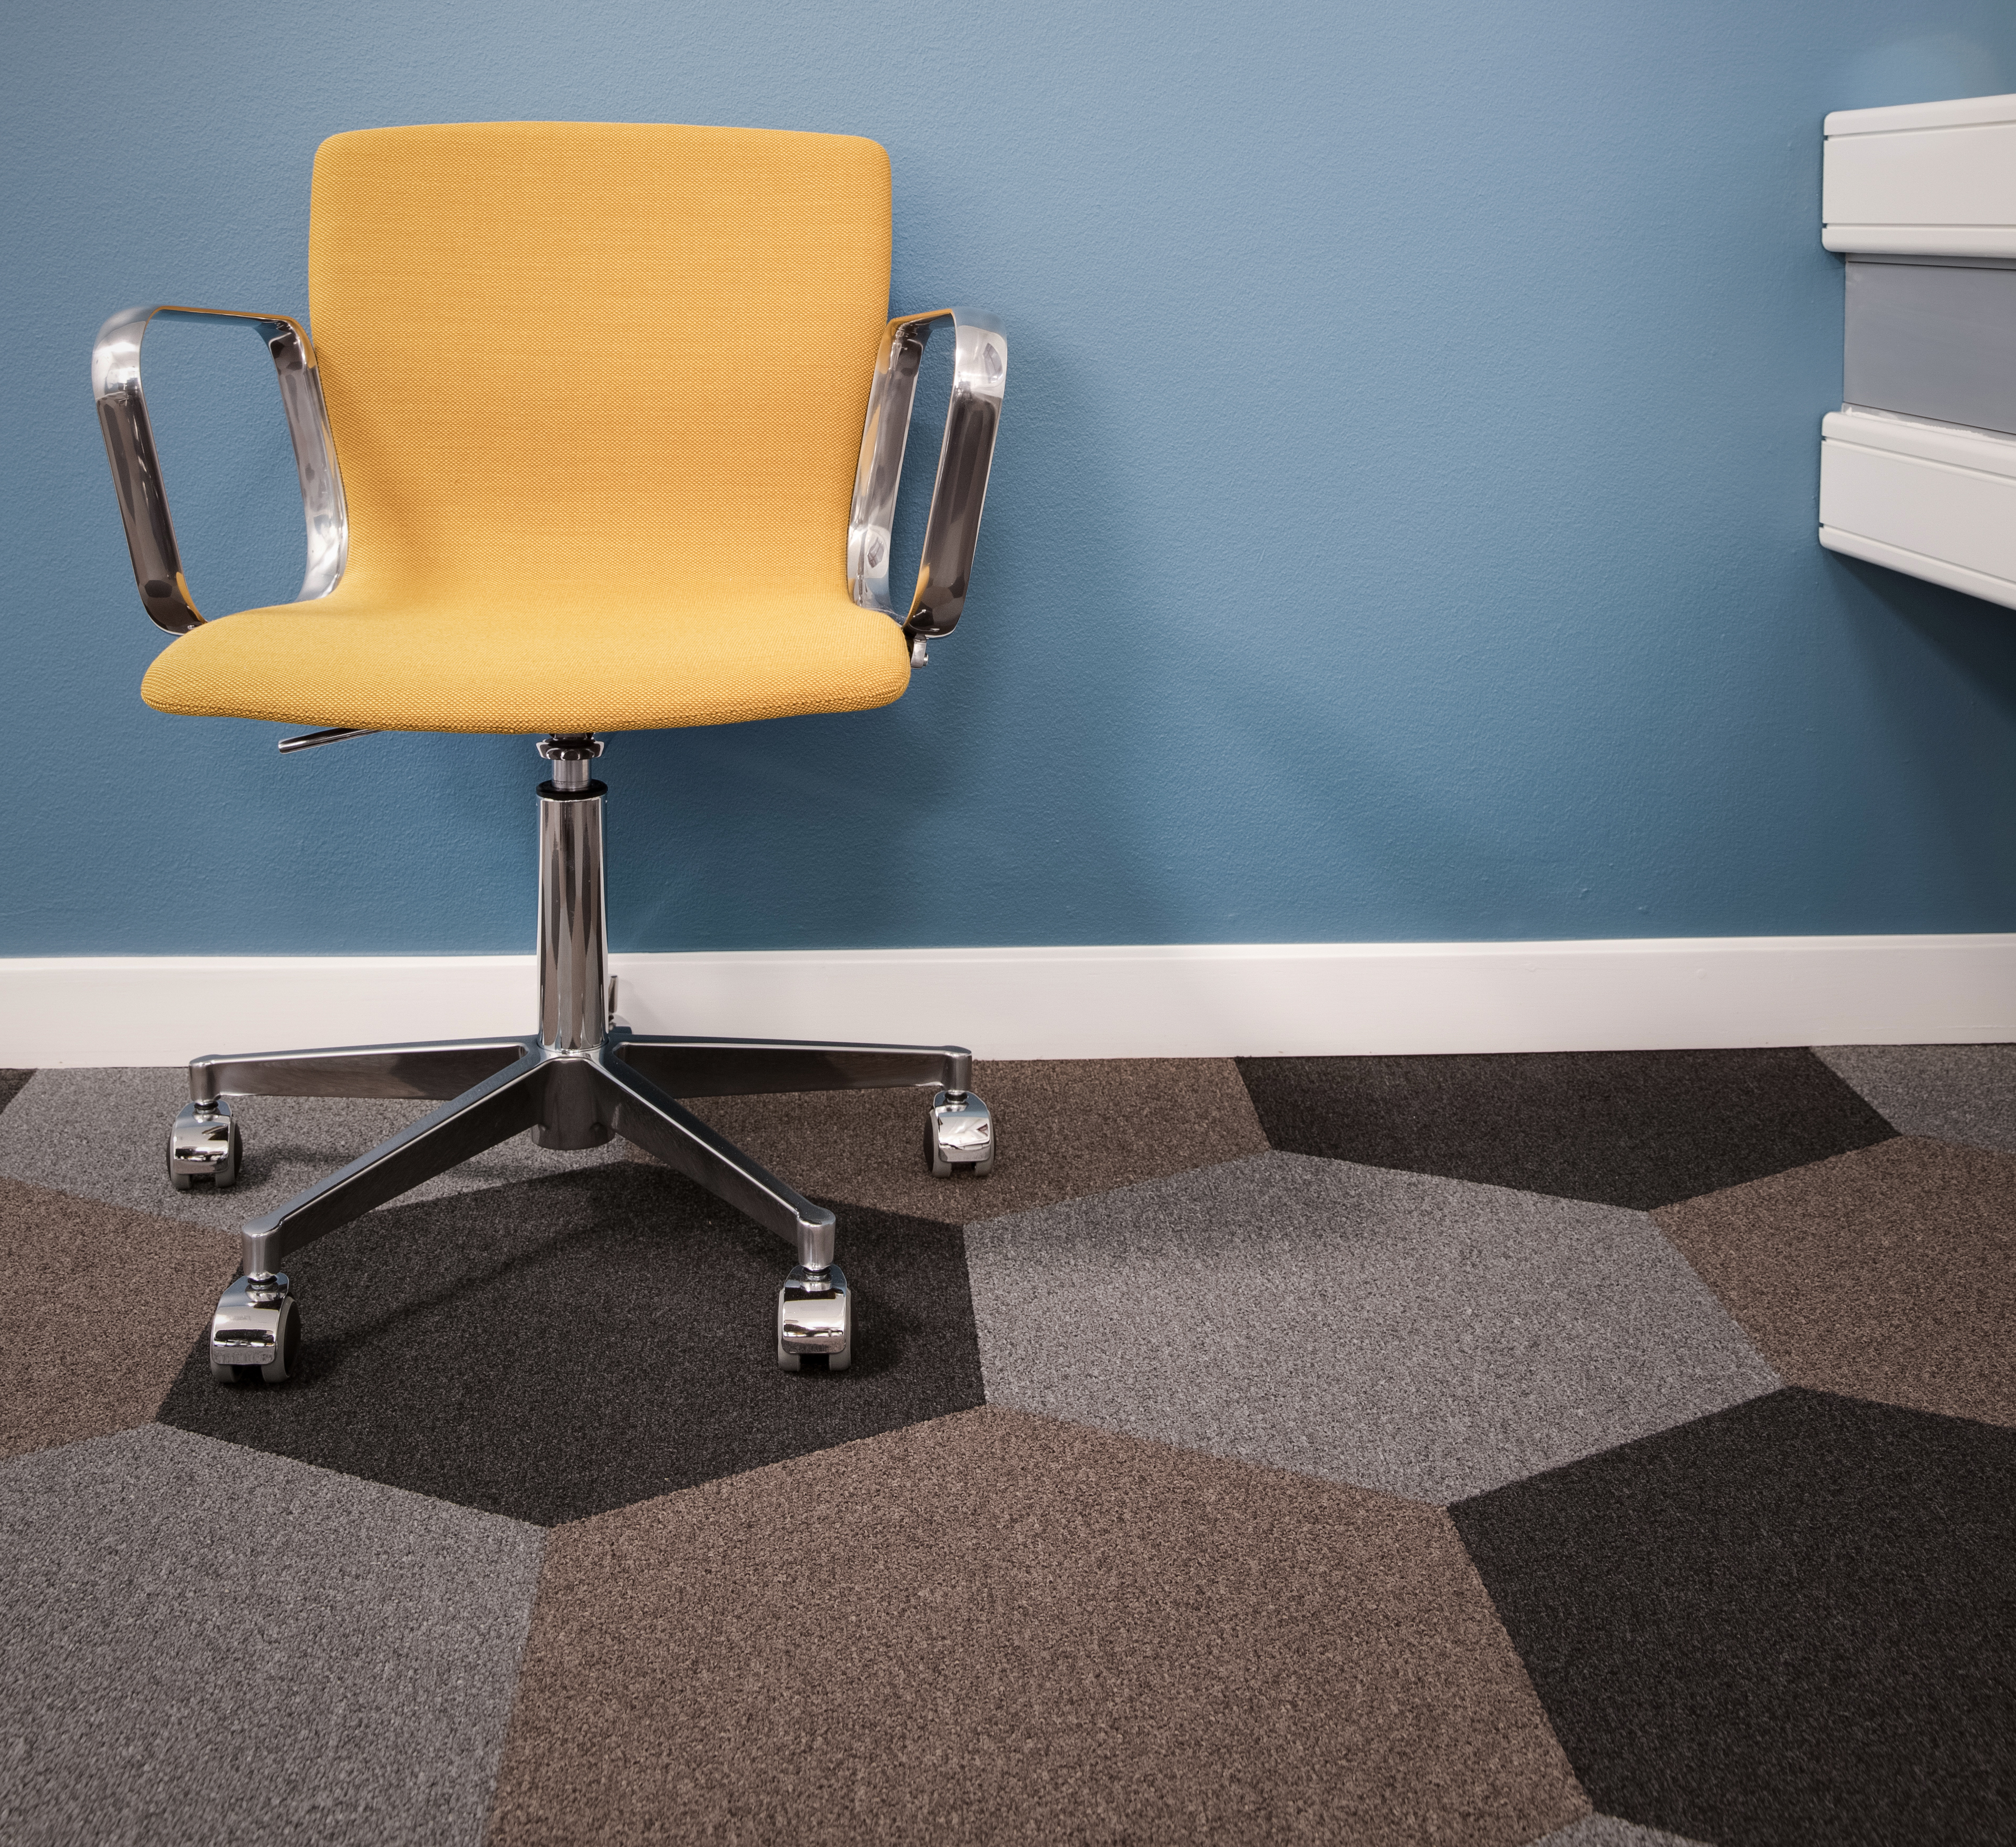 How do you ensure the quality of your commercial carpet?